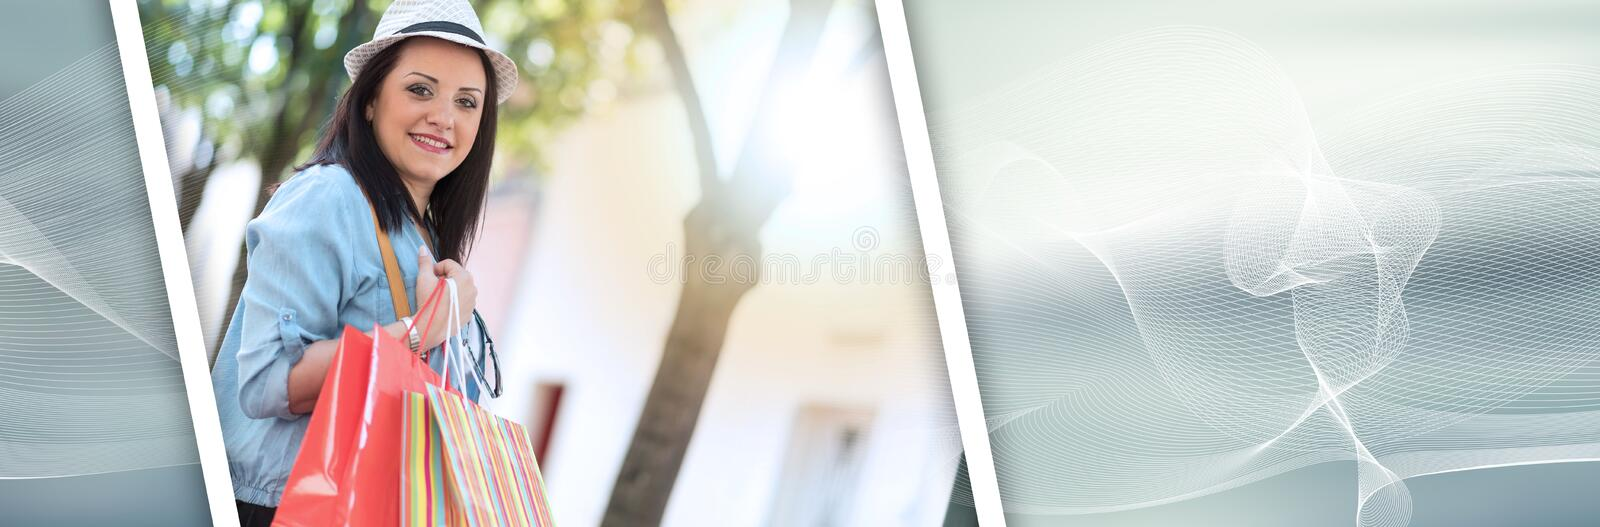 Young woman walking with shopping bags in hand, light effect. panoramic banner royalty free stock photography